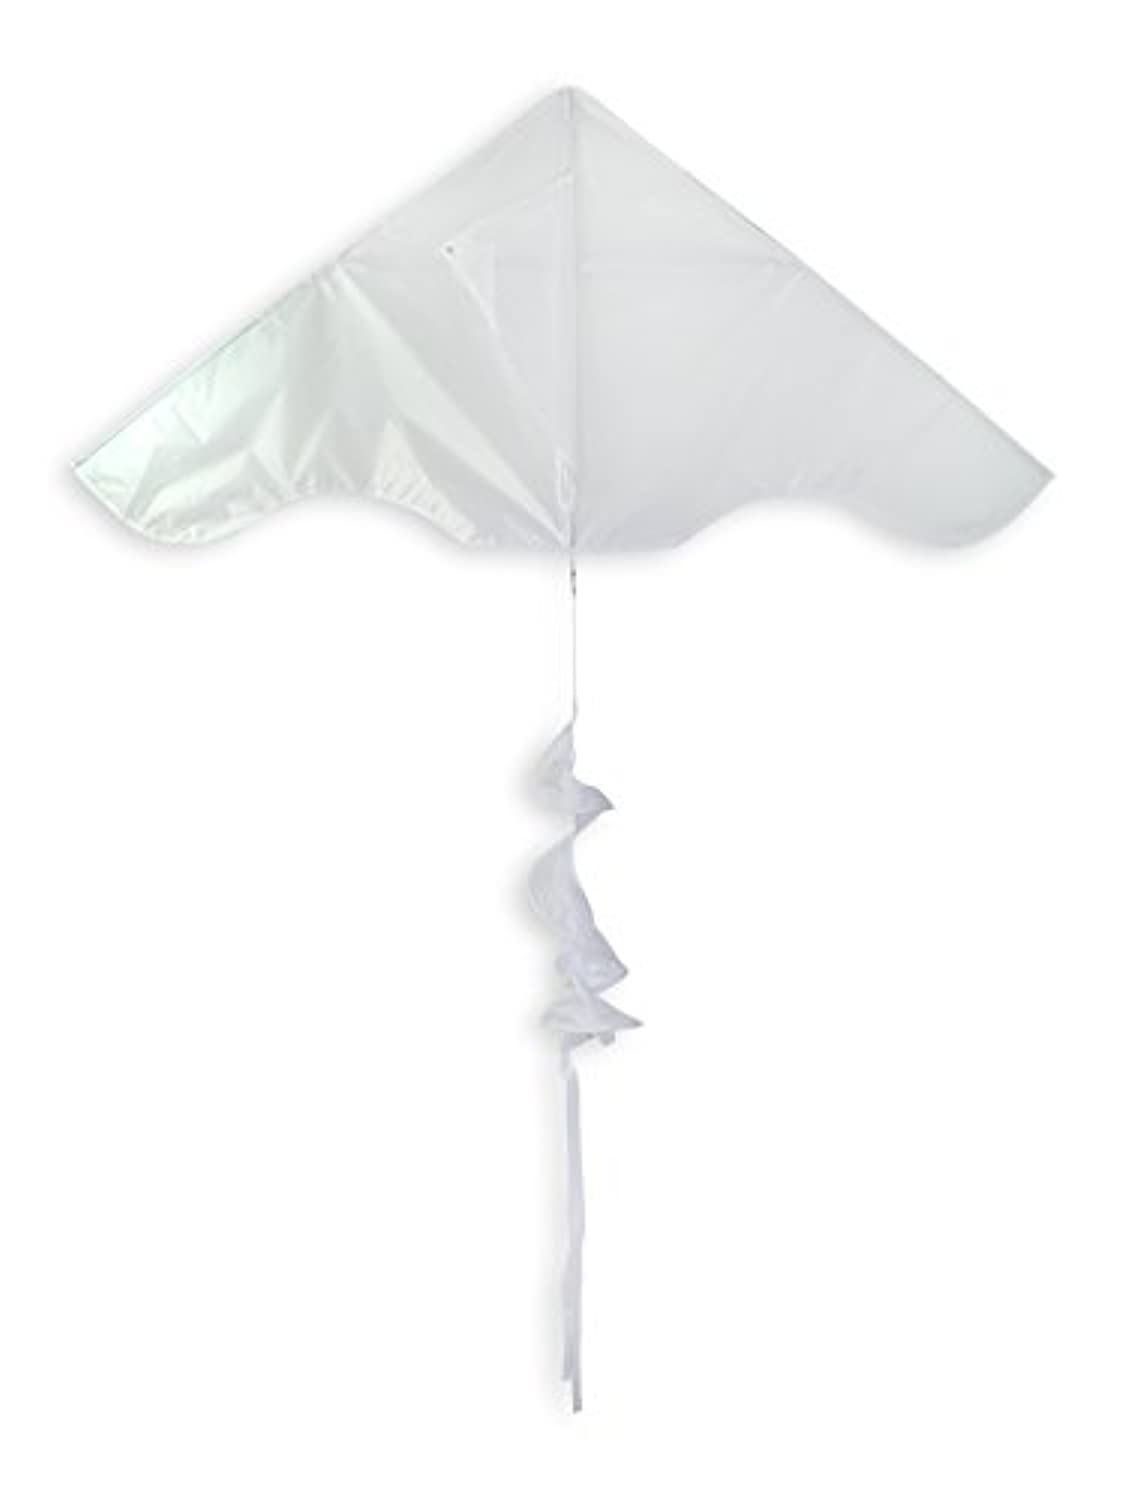 In the BreezeカラーブロックDelta Kite withツイスターtail- Single Line Kite – 55-inch、ホワイト